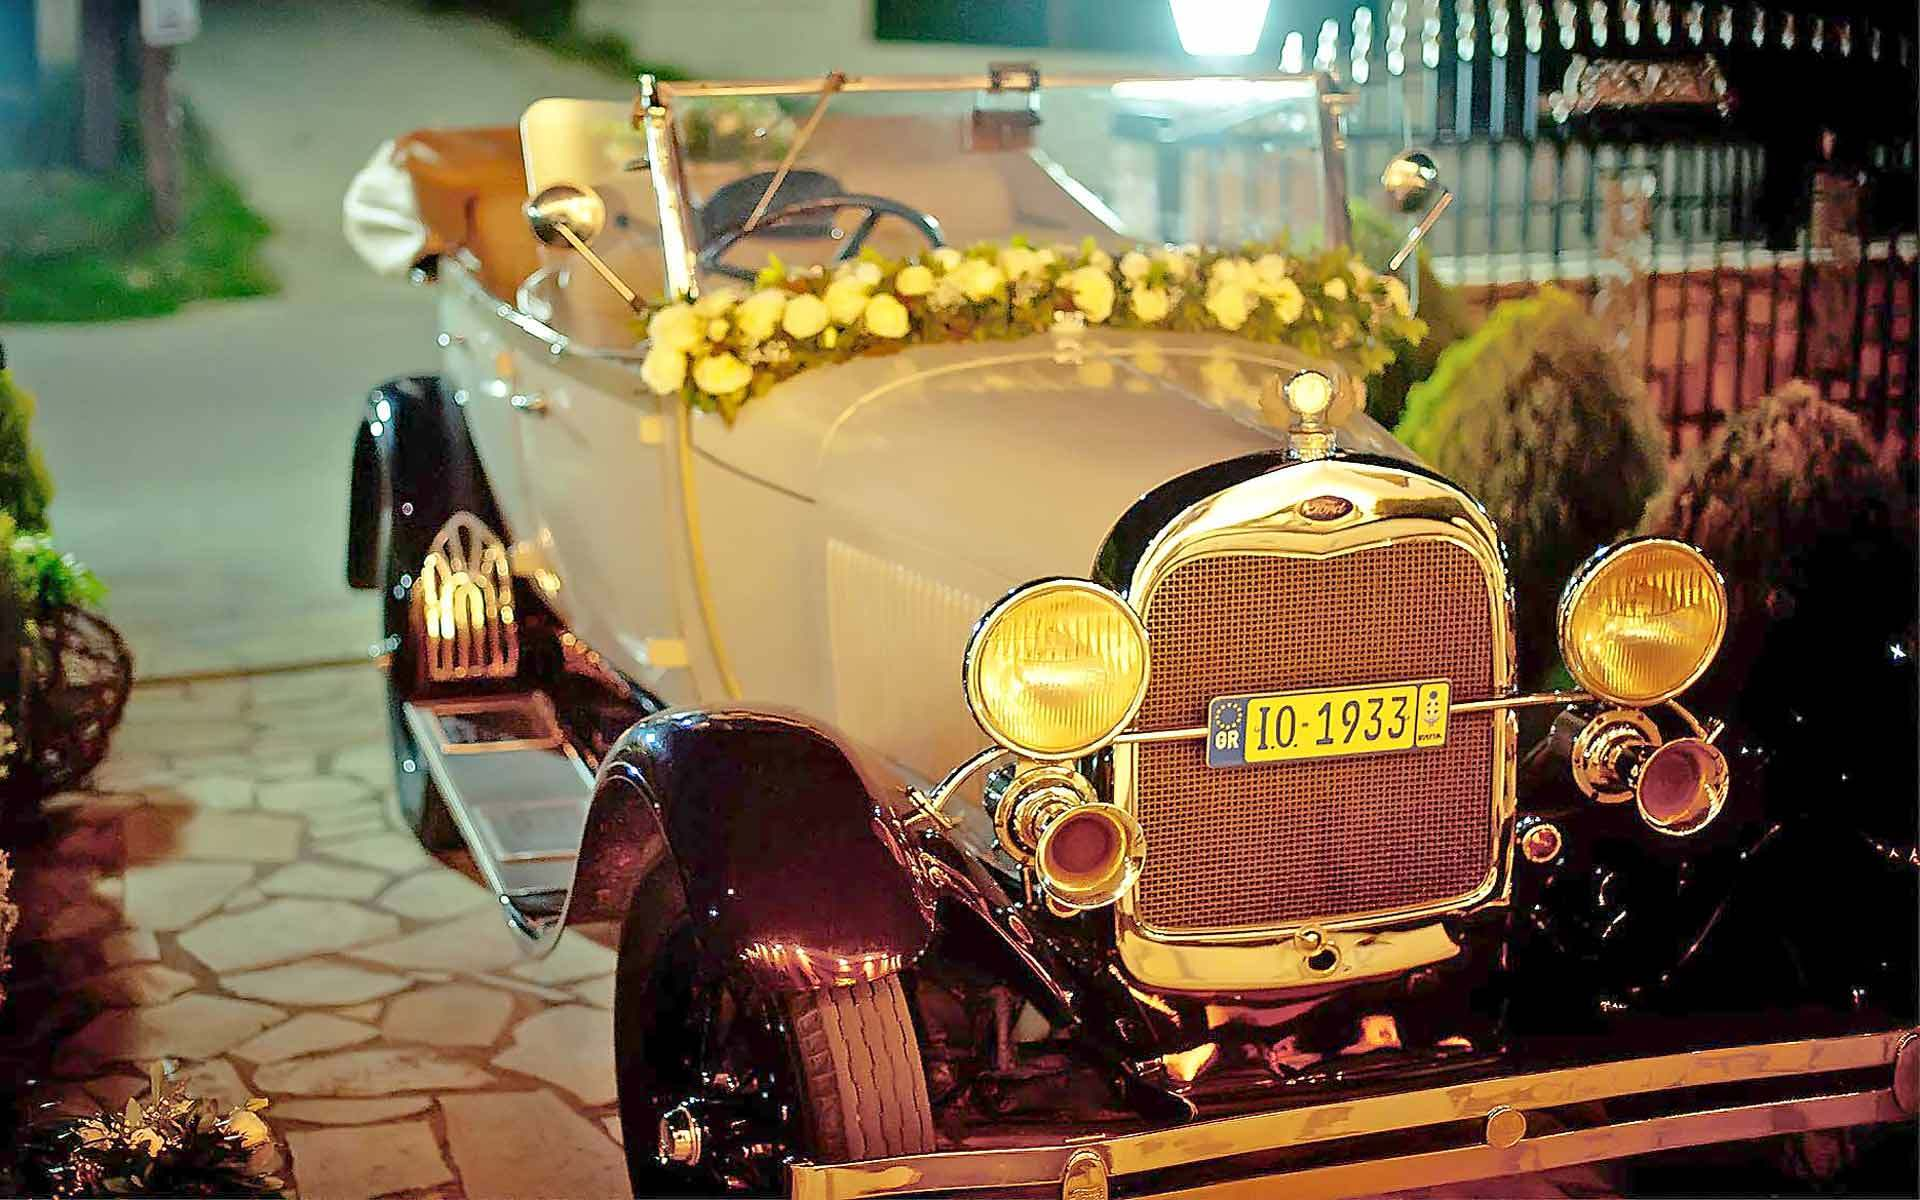 An-Amazing-Antique-Cars-For-Your-Wedding-Is-This-1956-Ford-Convertible